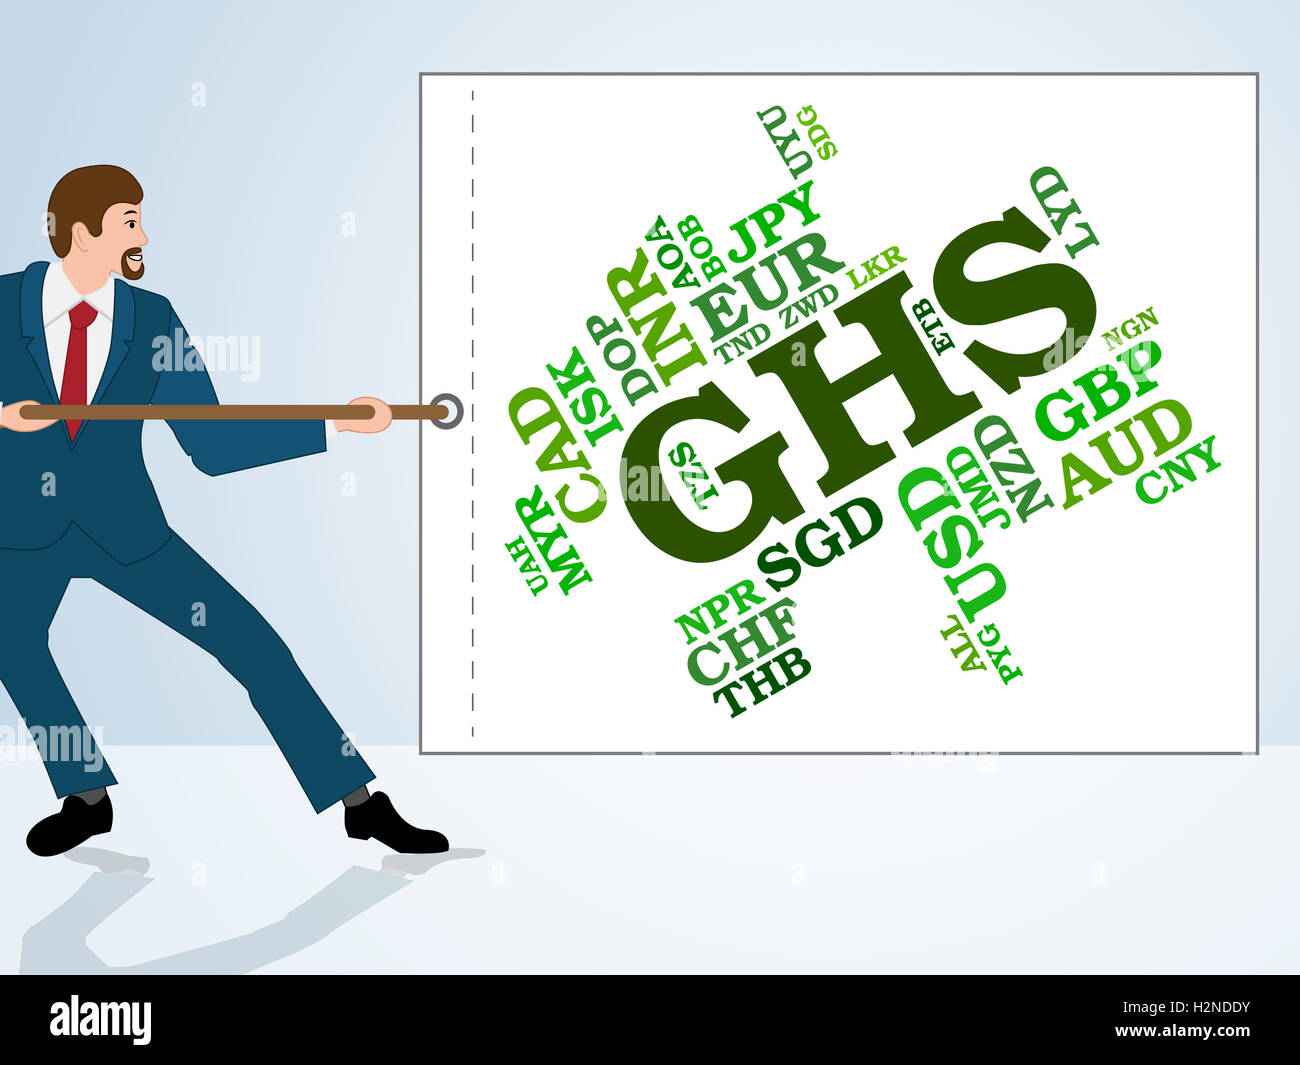 Ghanaian Cedi Stock Photos Ghanaian Cedi Stock Images Alamy